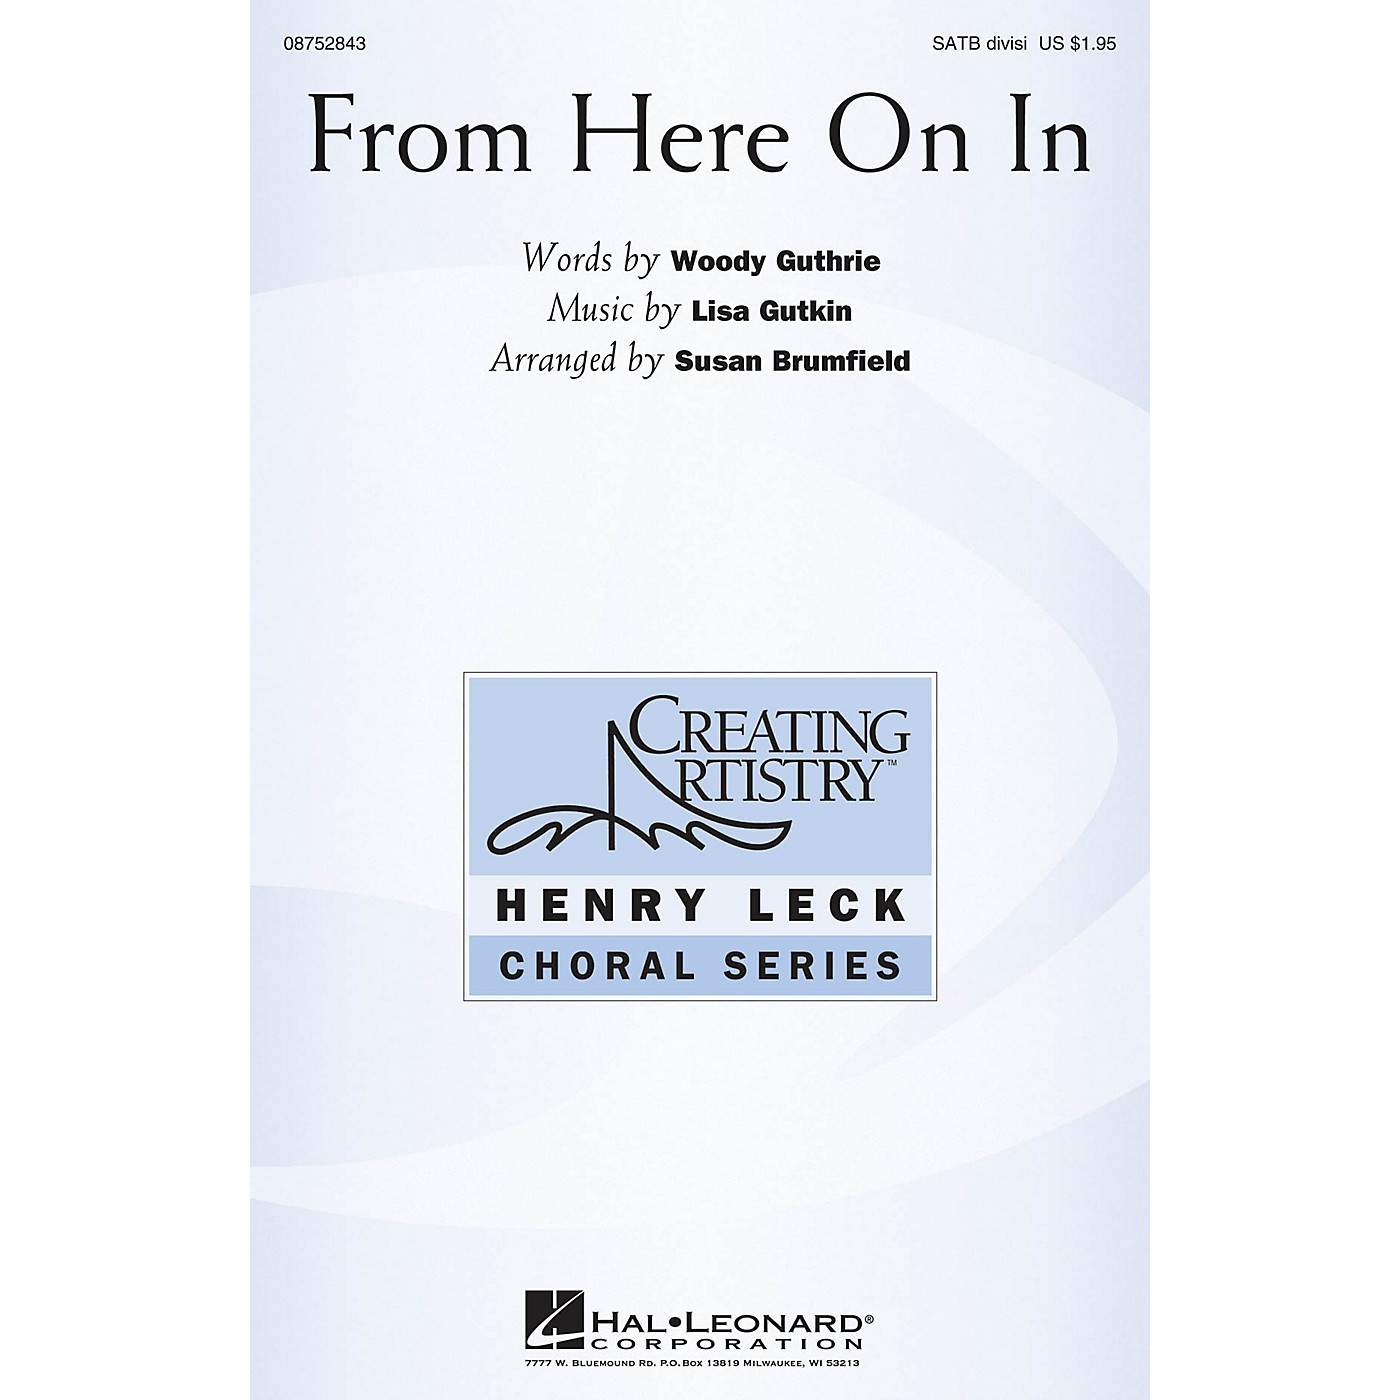 Hal Leonard From Here On In SATB Chorus and Solo by The Klezmatics arranged by Susan Brumfield thumbnail